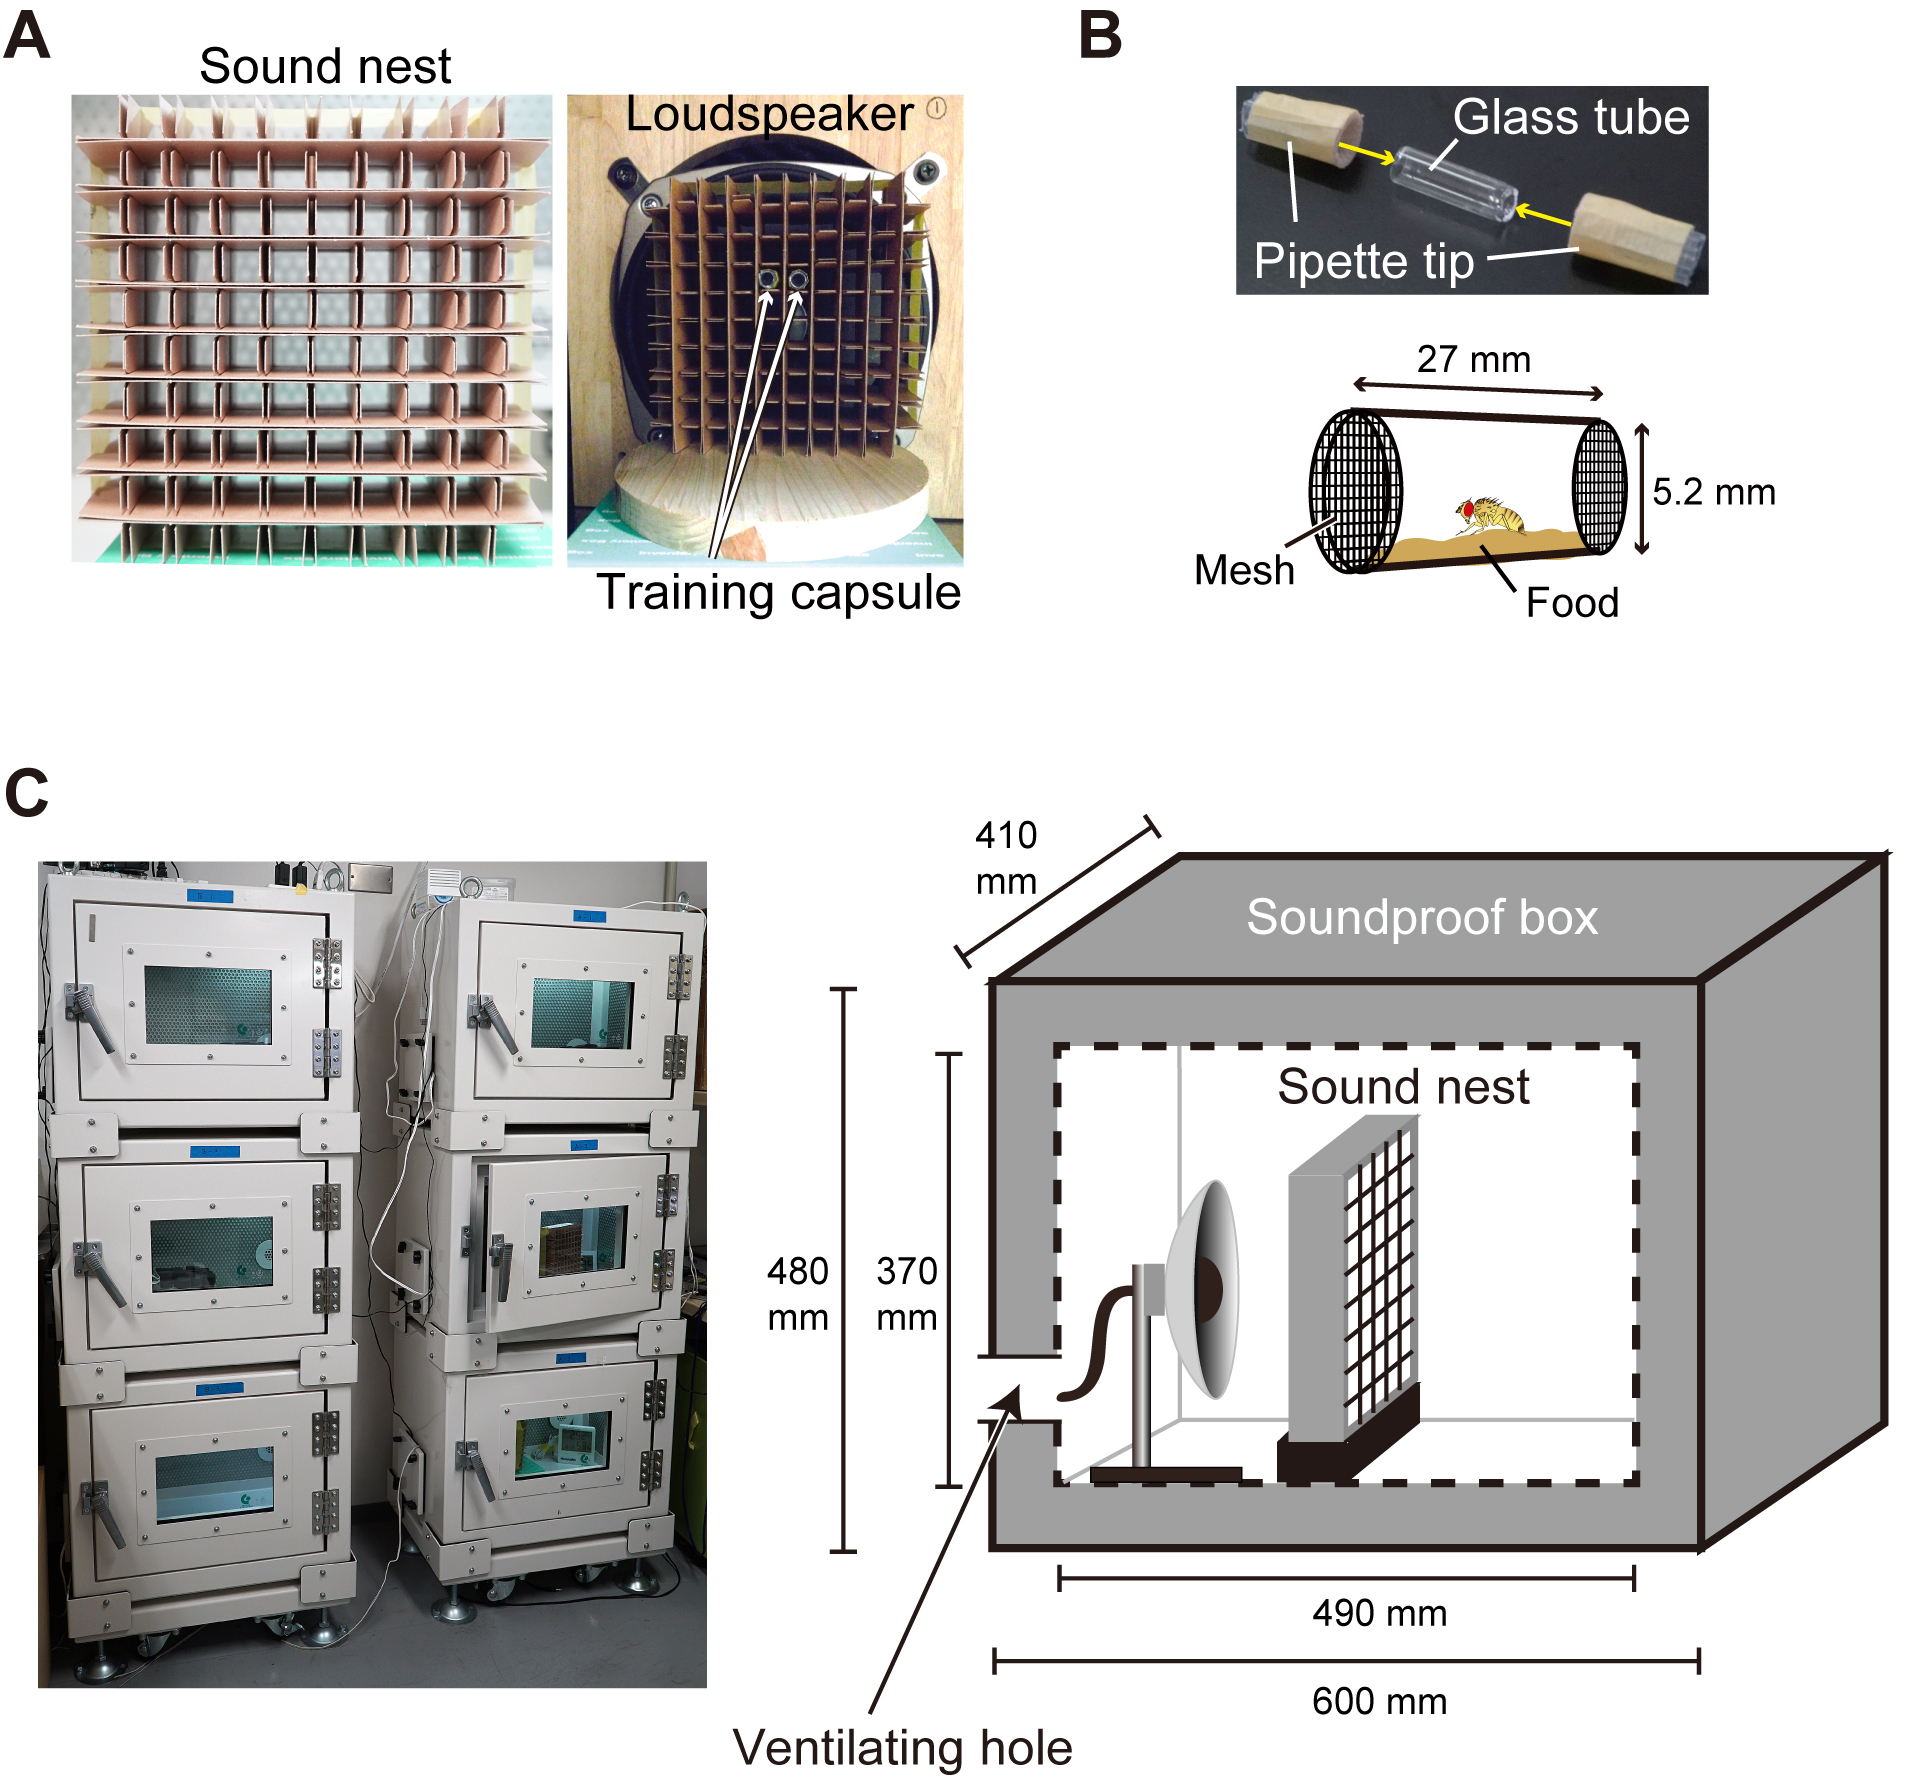 Assessing Experience Dependent Tuning Of Song Preference In Diagram D Audio For 410 Rooms Using A Second Stereo Receiver Two Pipette Tips Sealed With Stocking Mesh Cover Both Open Ends Glass Tube Upper Schematic